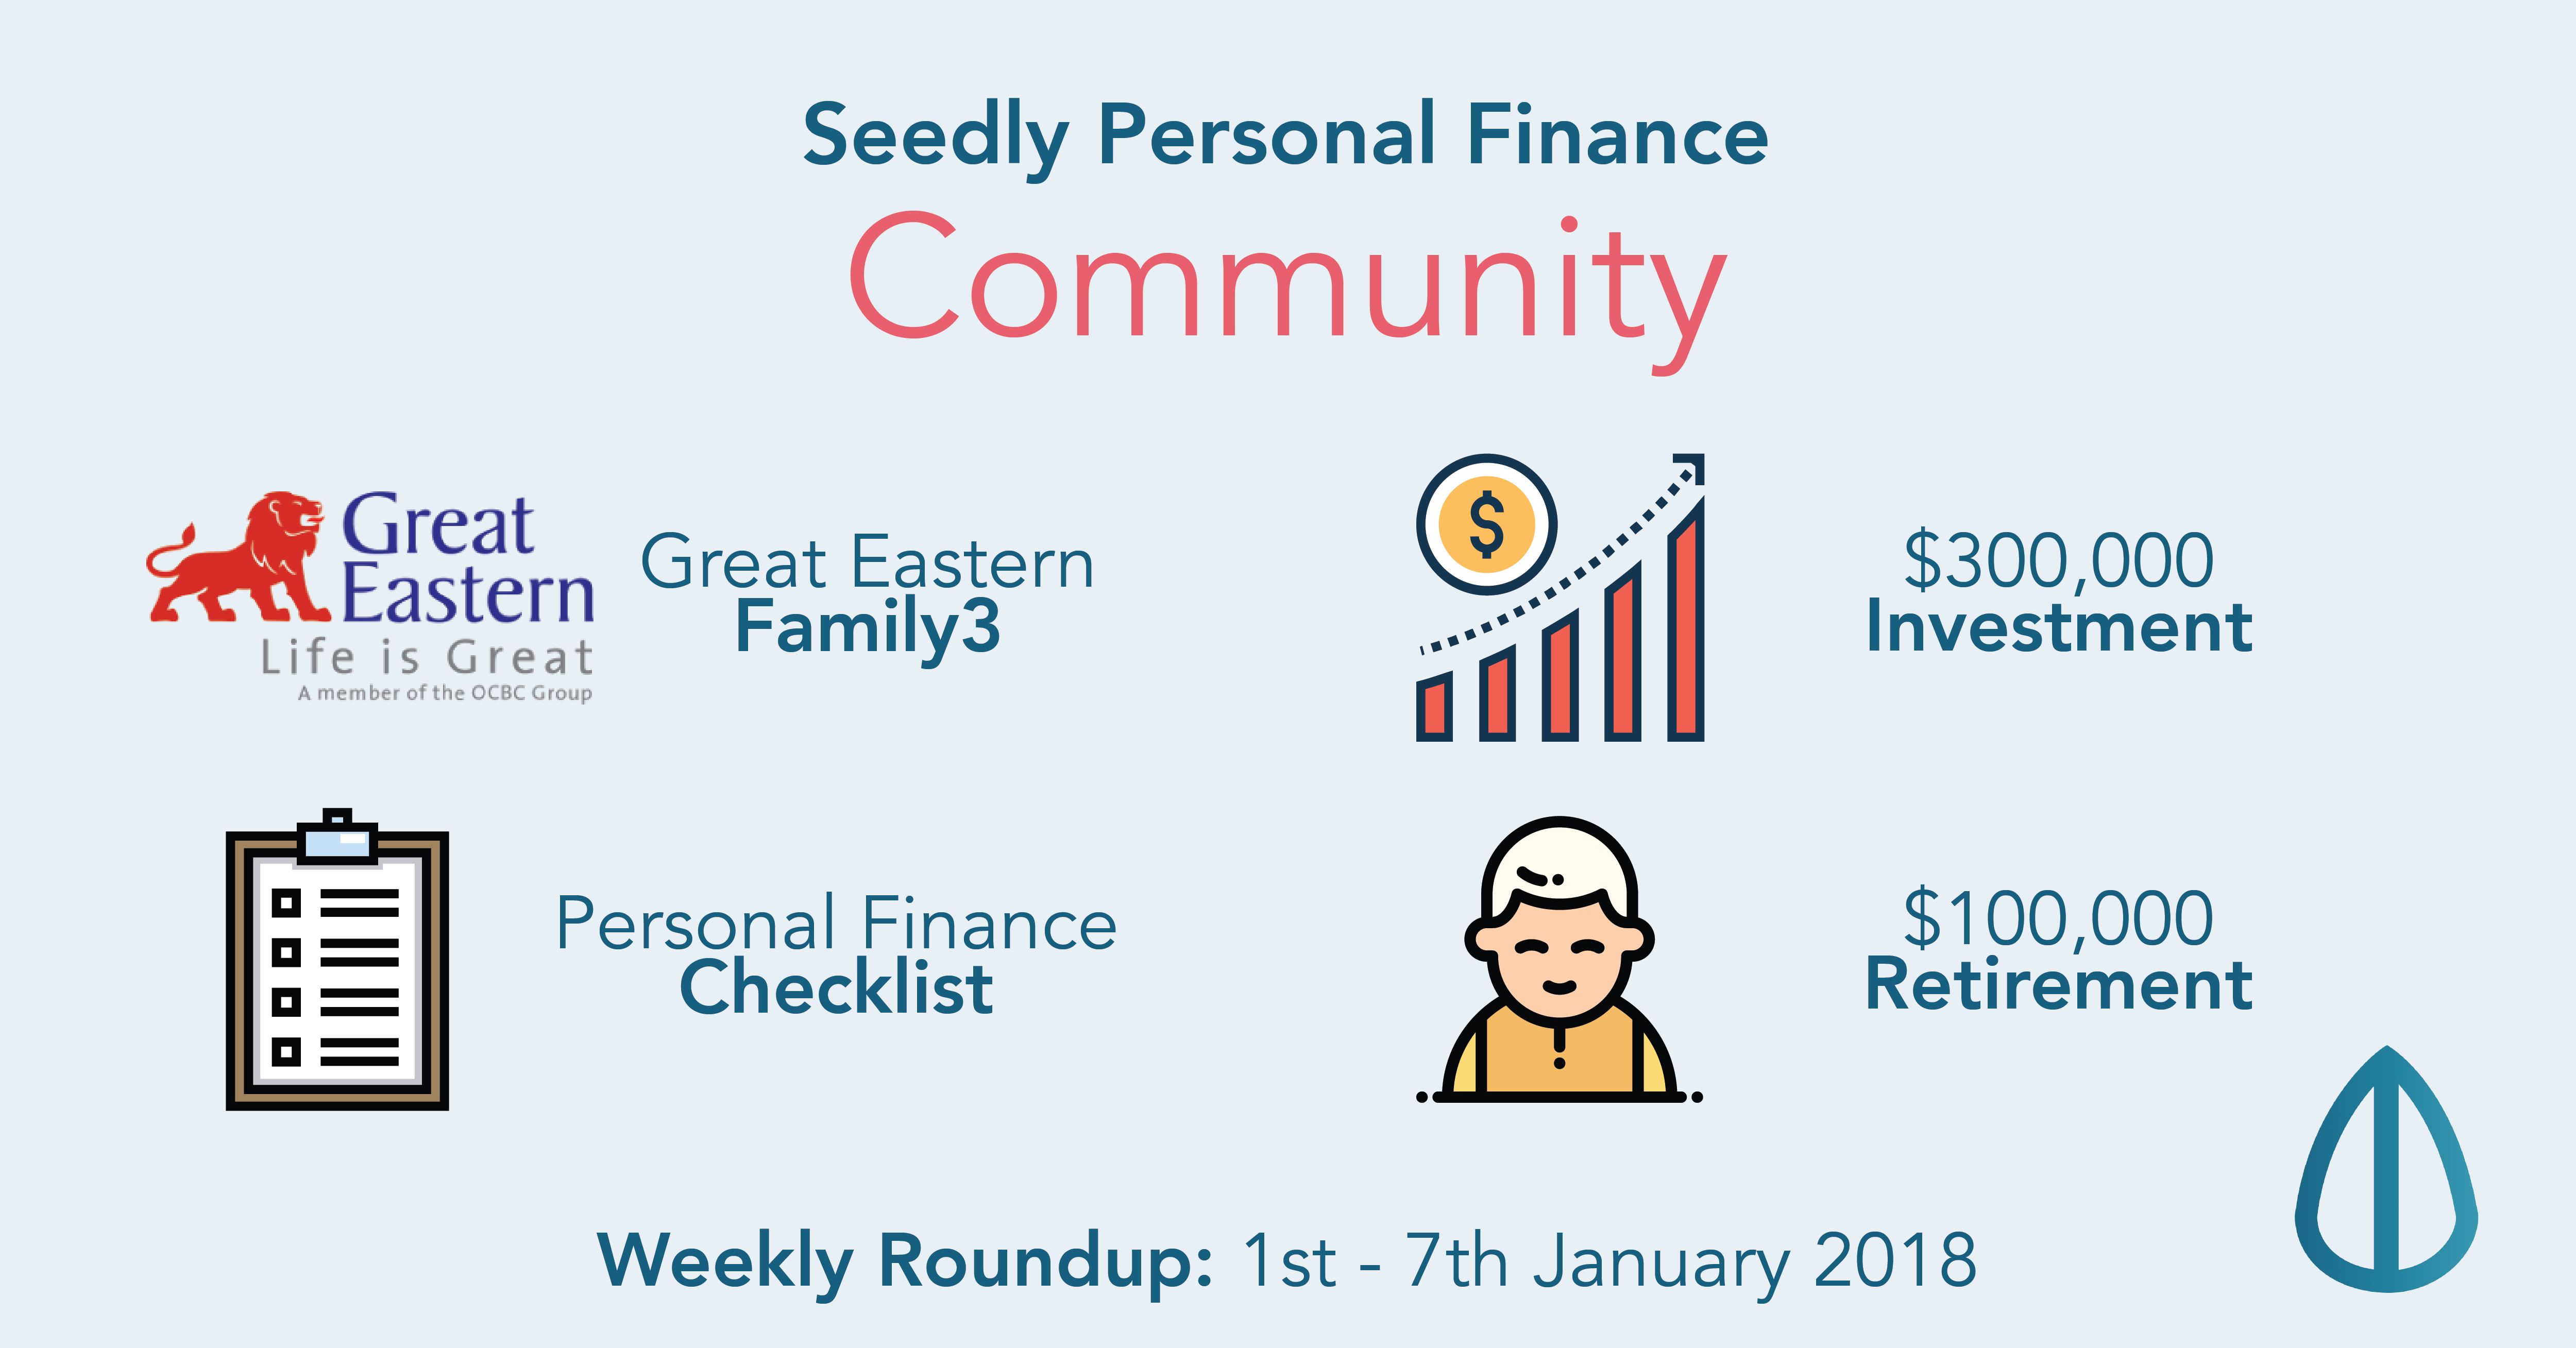 This Week On Seedly: Great Eastern Family3, Personal Finance Checklist, Retirement with $100,000